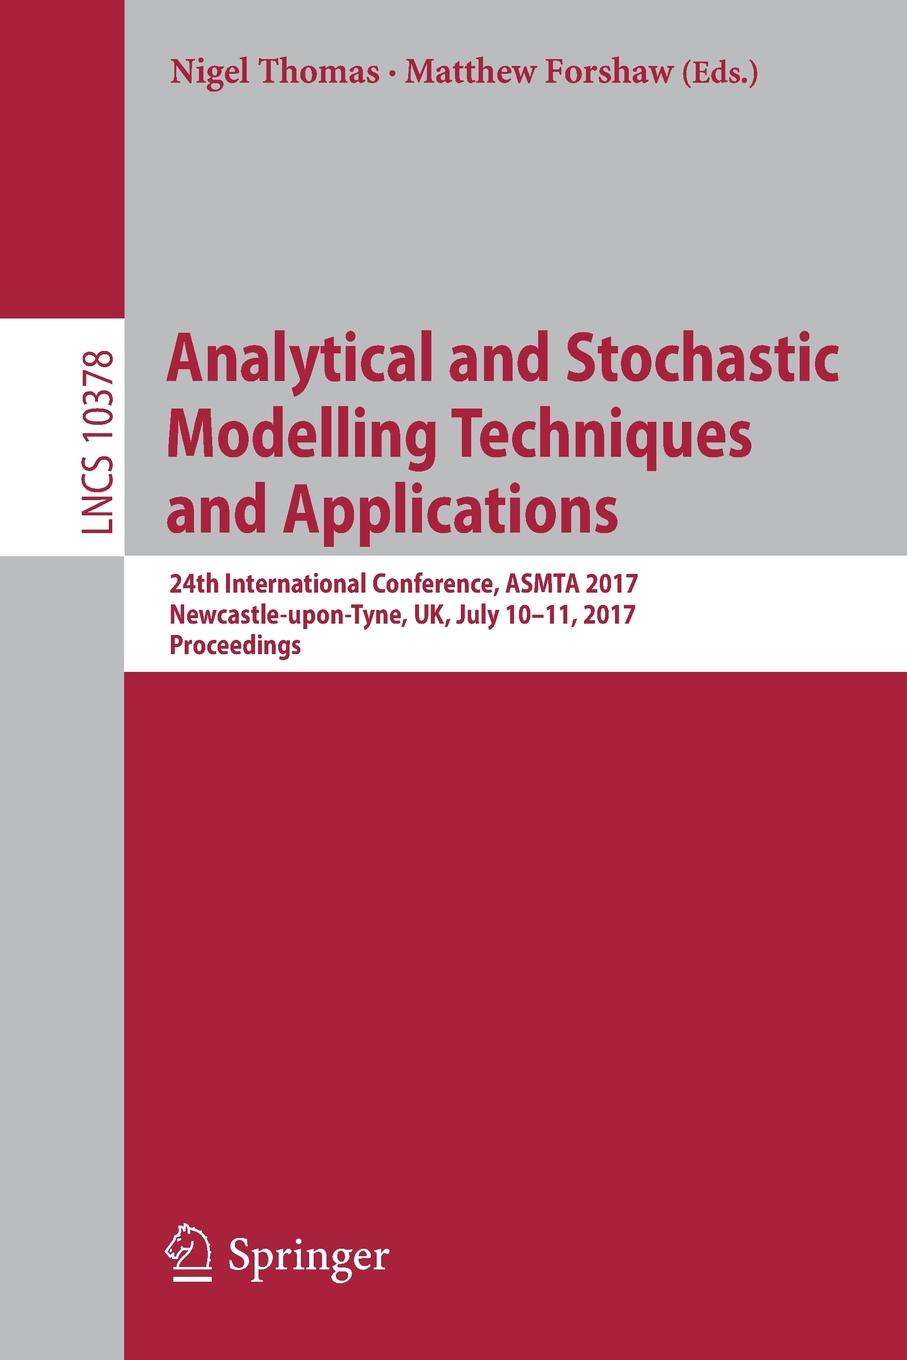 Analytical and Stochastic Modelling Techniques and Applications. 24th International Conference, ASMTA 2017, Newcastle-upon-Tyne, UK, July 10-11, 2017, Proceedings caroli sergio analytical techniques for clinical chemistry methods and applications